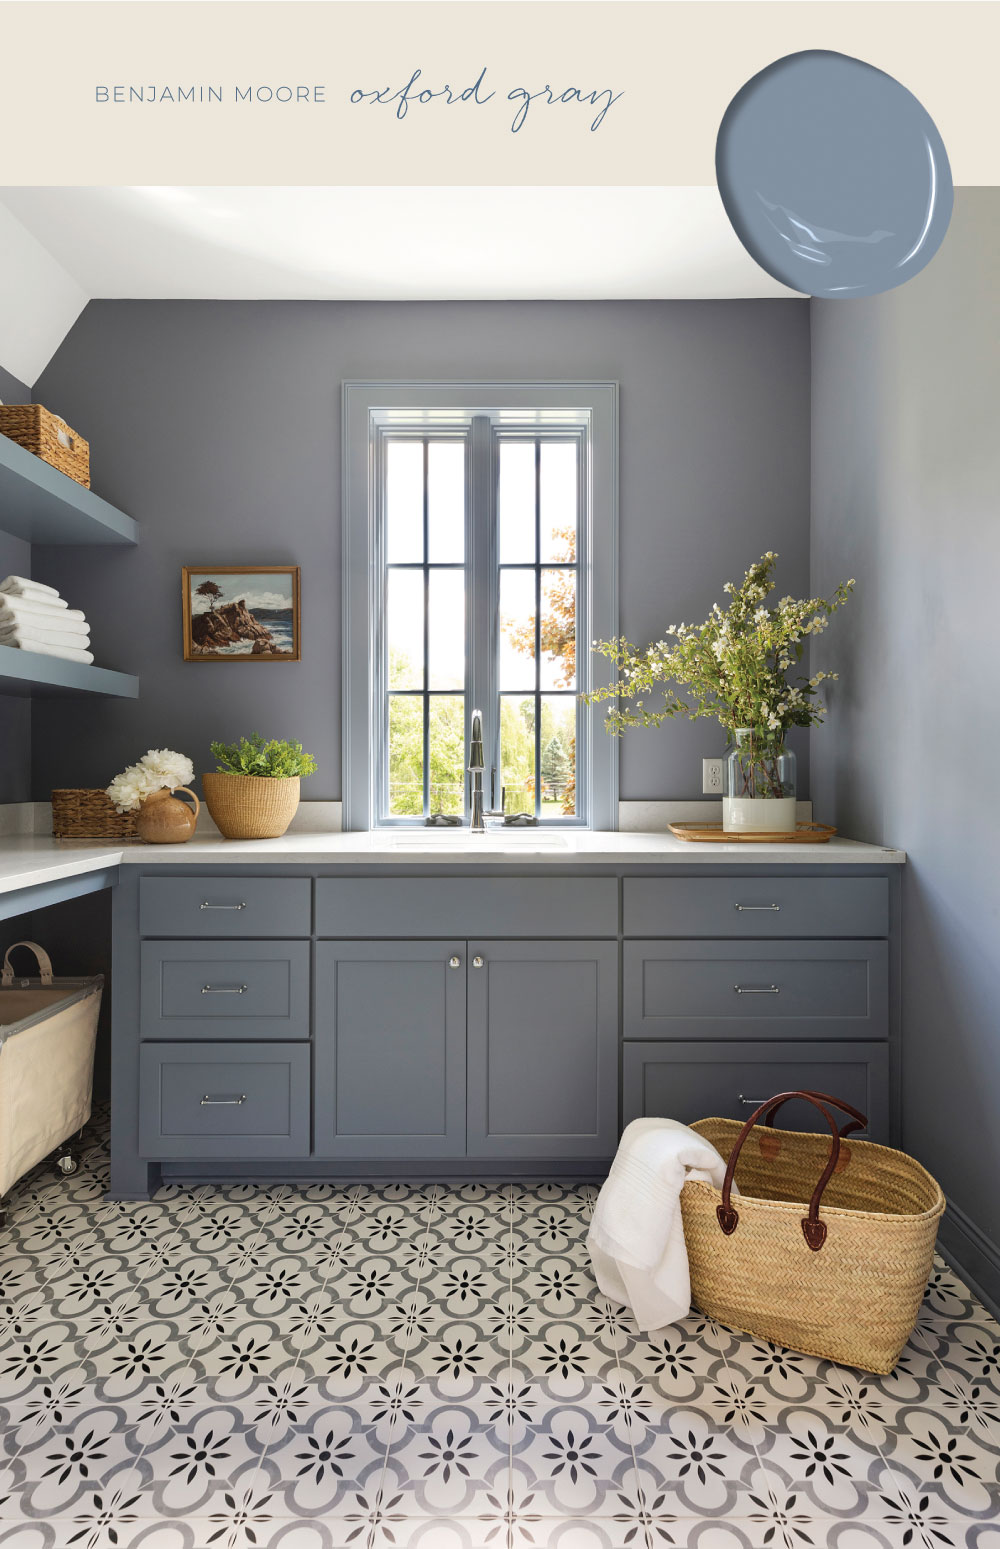 Our Favorite Blue And Gray Paint Colors Bria Hammel Interiors